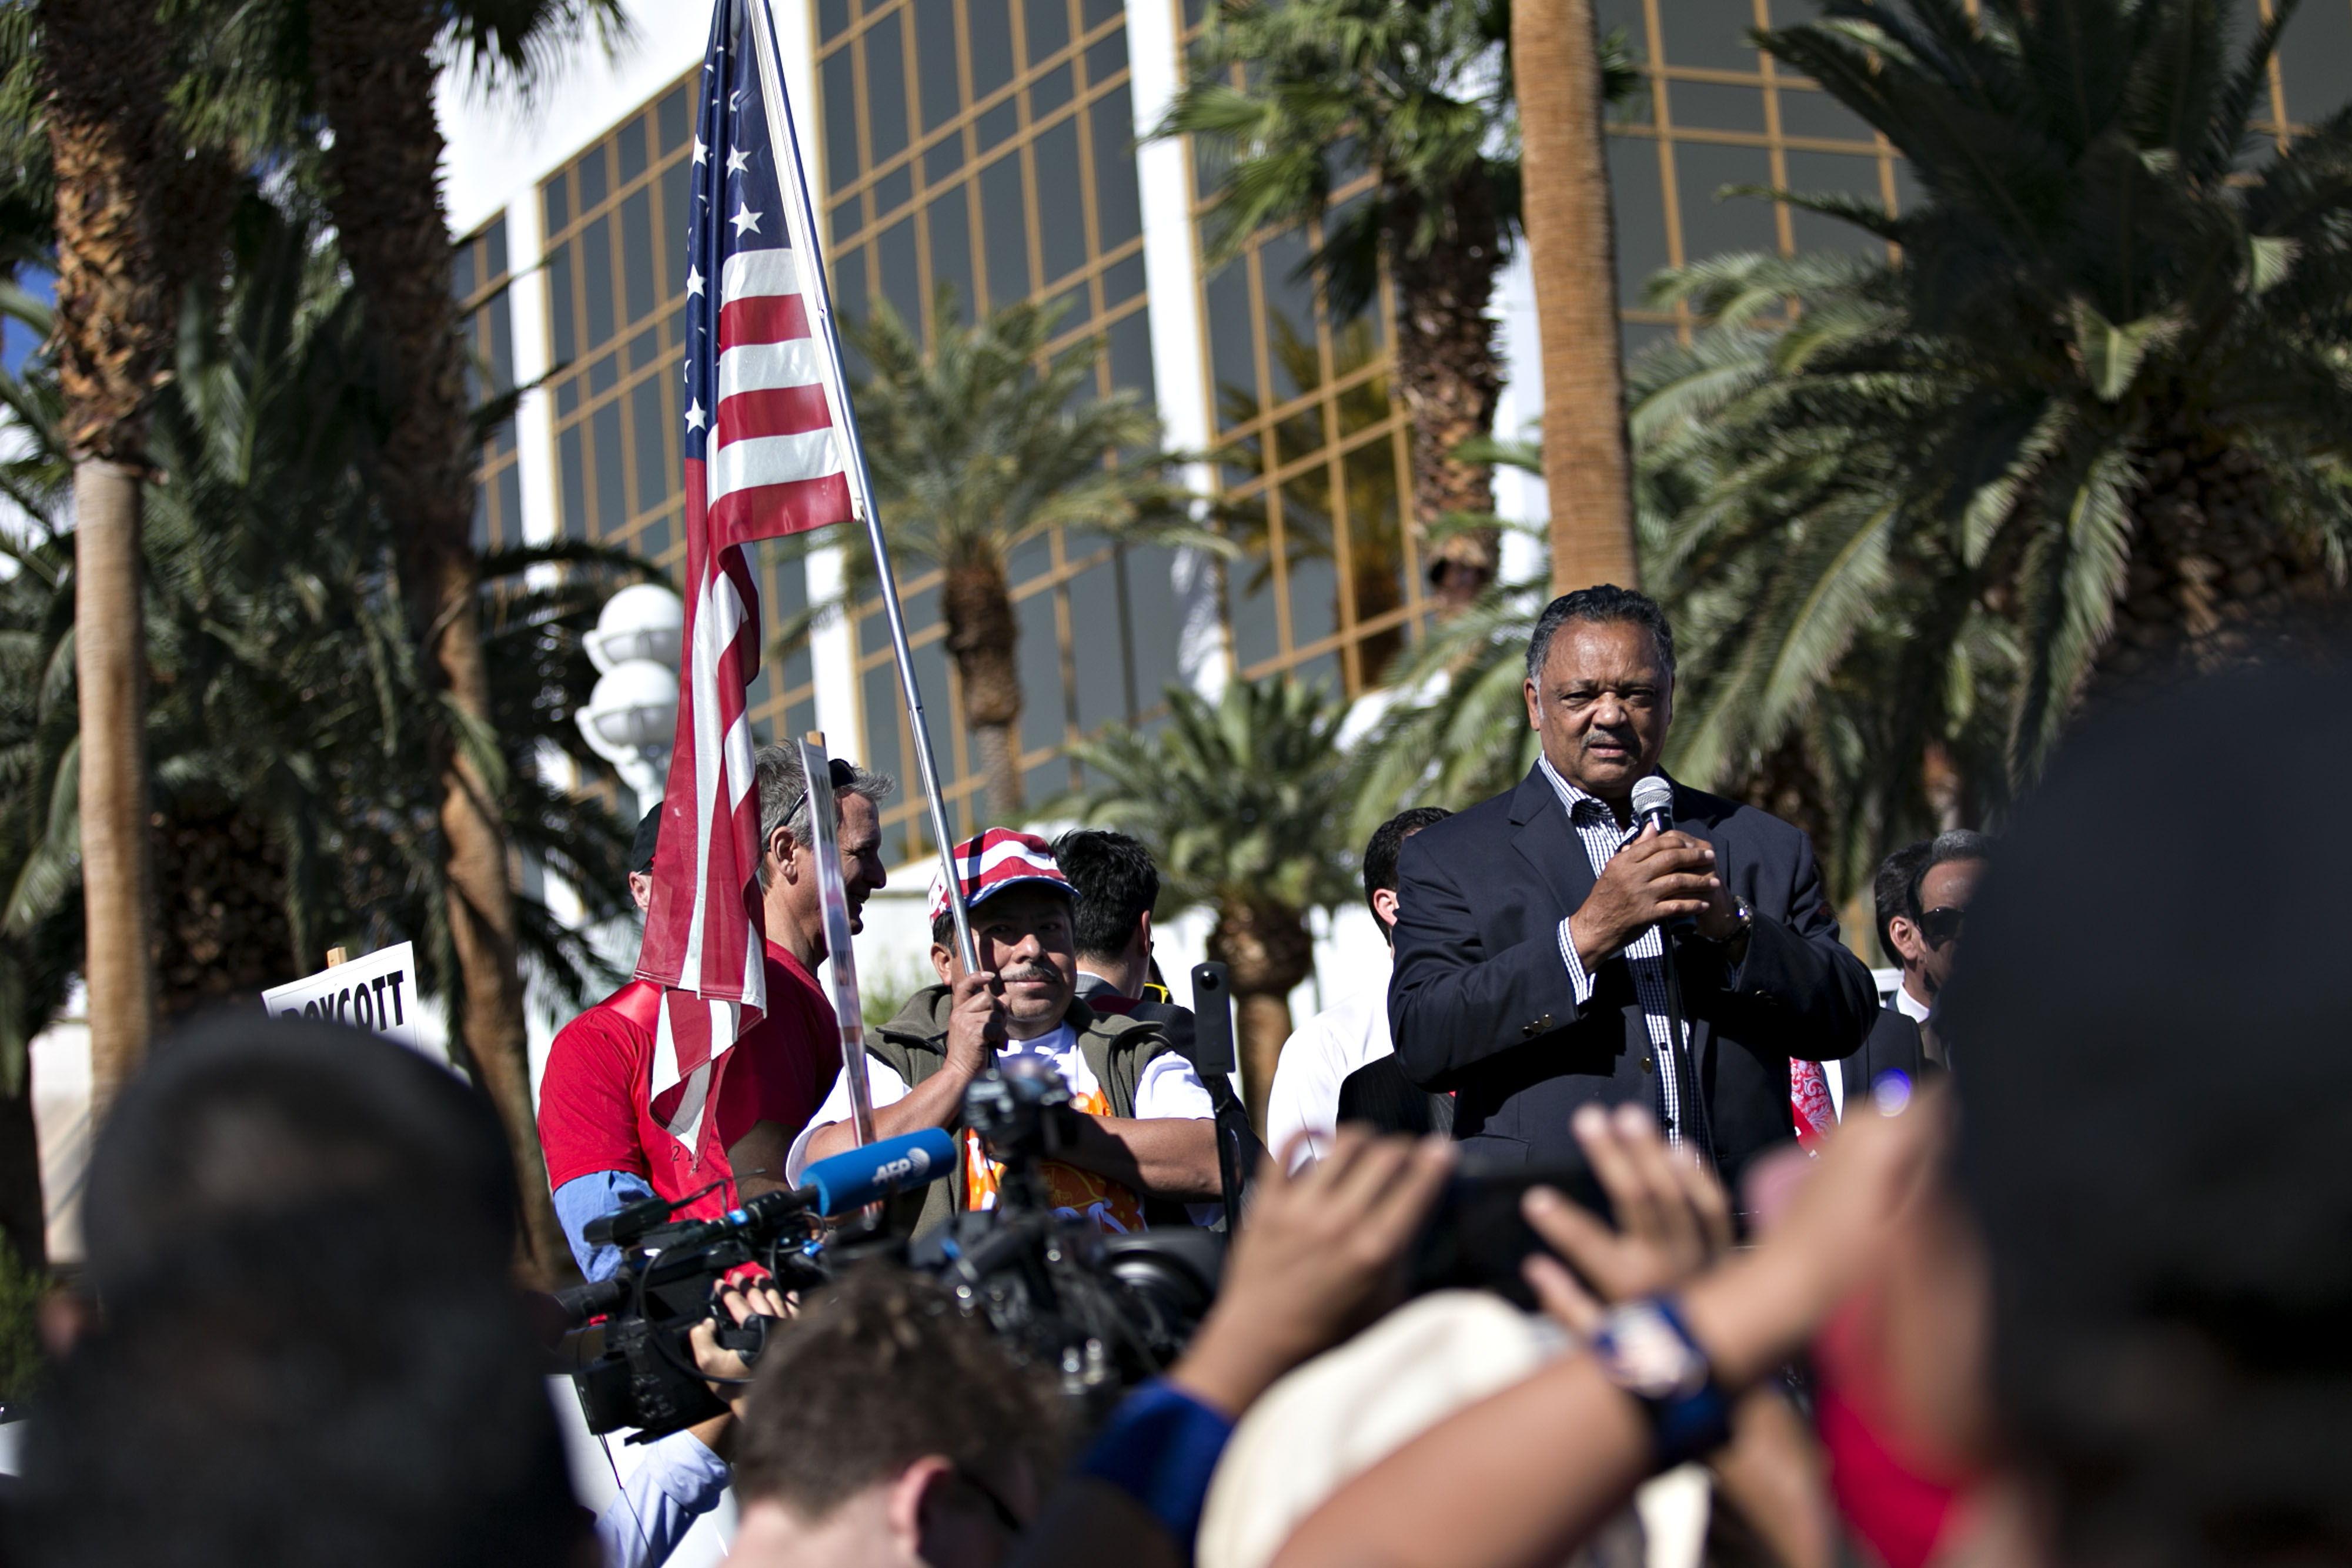 Reverend Jesse Jackson speaks during a demonstration outside the Trump International Hotel Las Vegas ahead of the third presidential debate in Las Vegas, Nevada, U.S., on Wednesday, Oct. 19, 2016. The debate, moderated by Chris Wallace of Fox News, will be the final meeting of Donald Trump and Hillary Clinton ahead of the November 8 presidential election. Photographer: Daniel Acker/Bloomberg